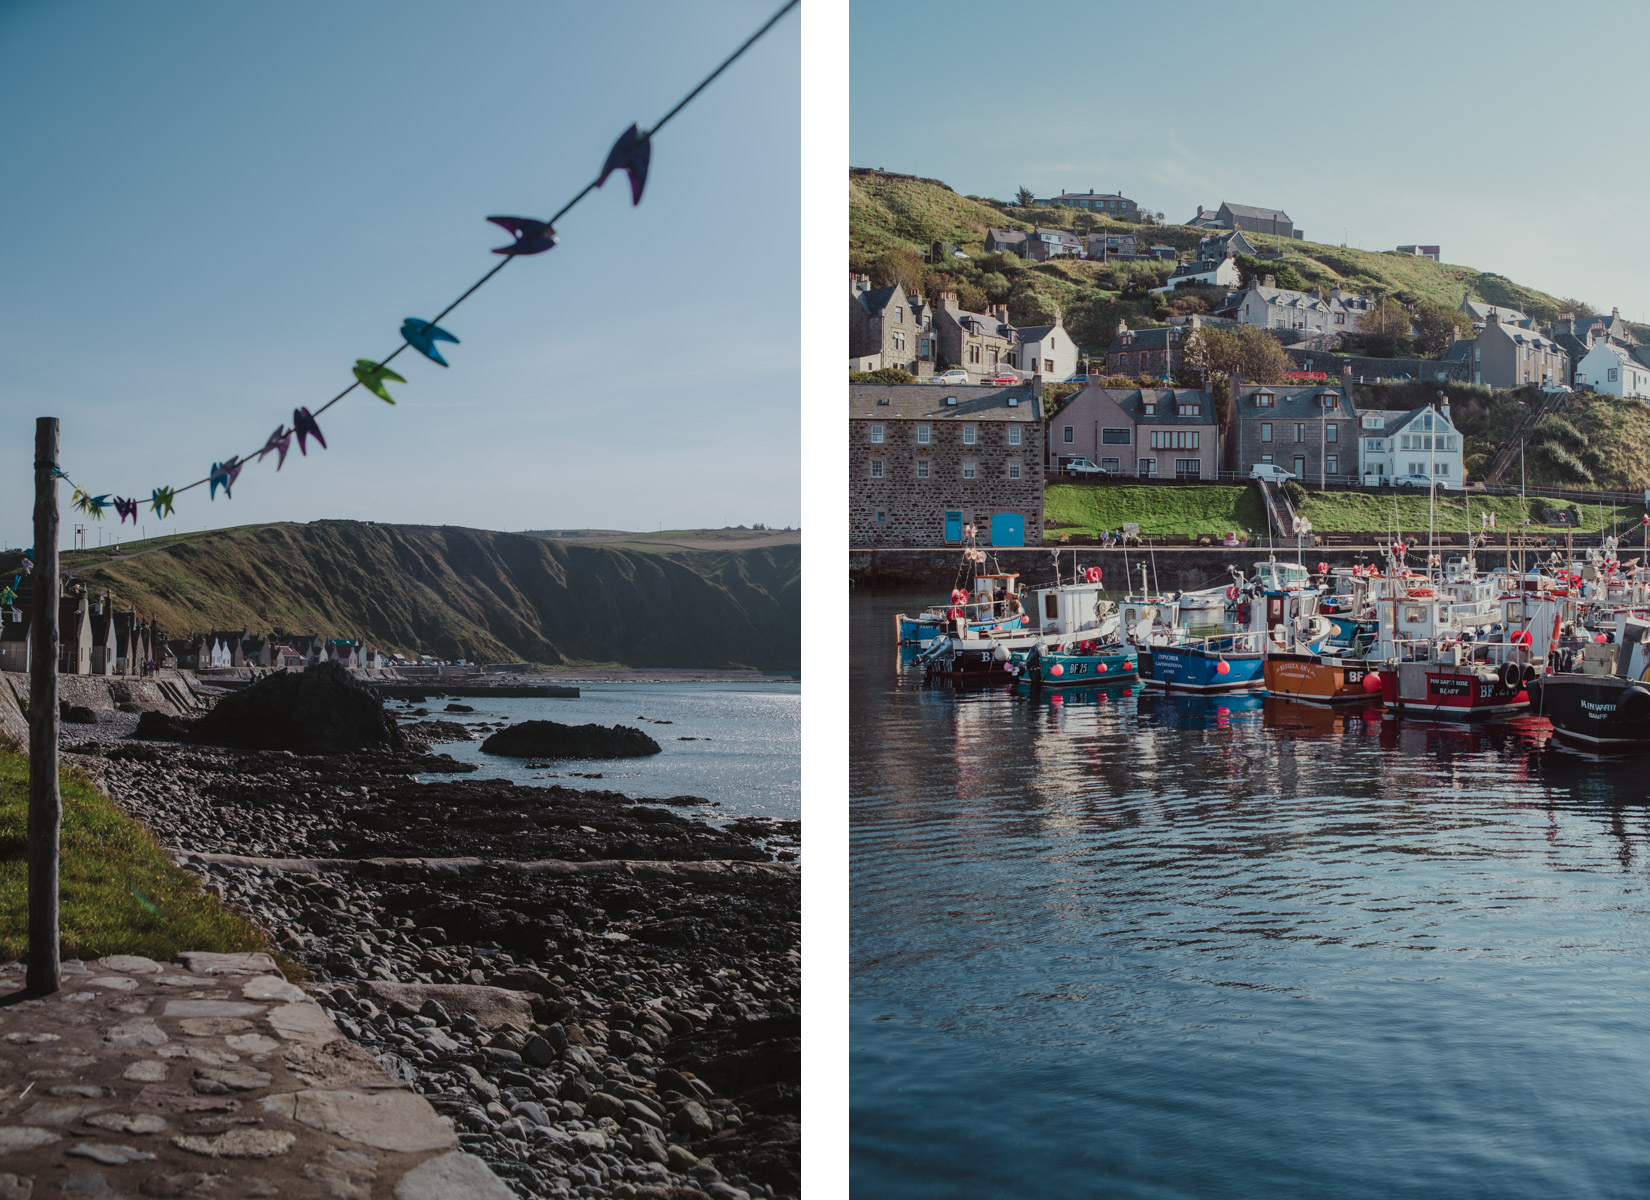 A diptych with on the left a detail of the Scottish village of Crovie and on the right boats and houses of a Scottish village, un dittico con un dettaglio del villaggio di Crovie a sinistra e a destra case e piccole barche di un altro piccolo paese in Scozia vicino a Crovie